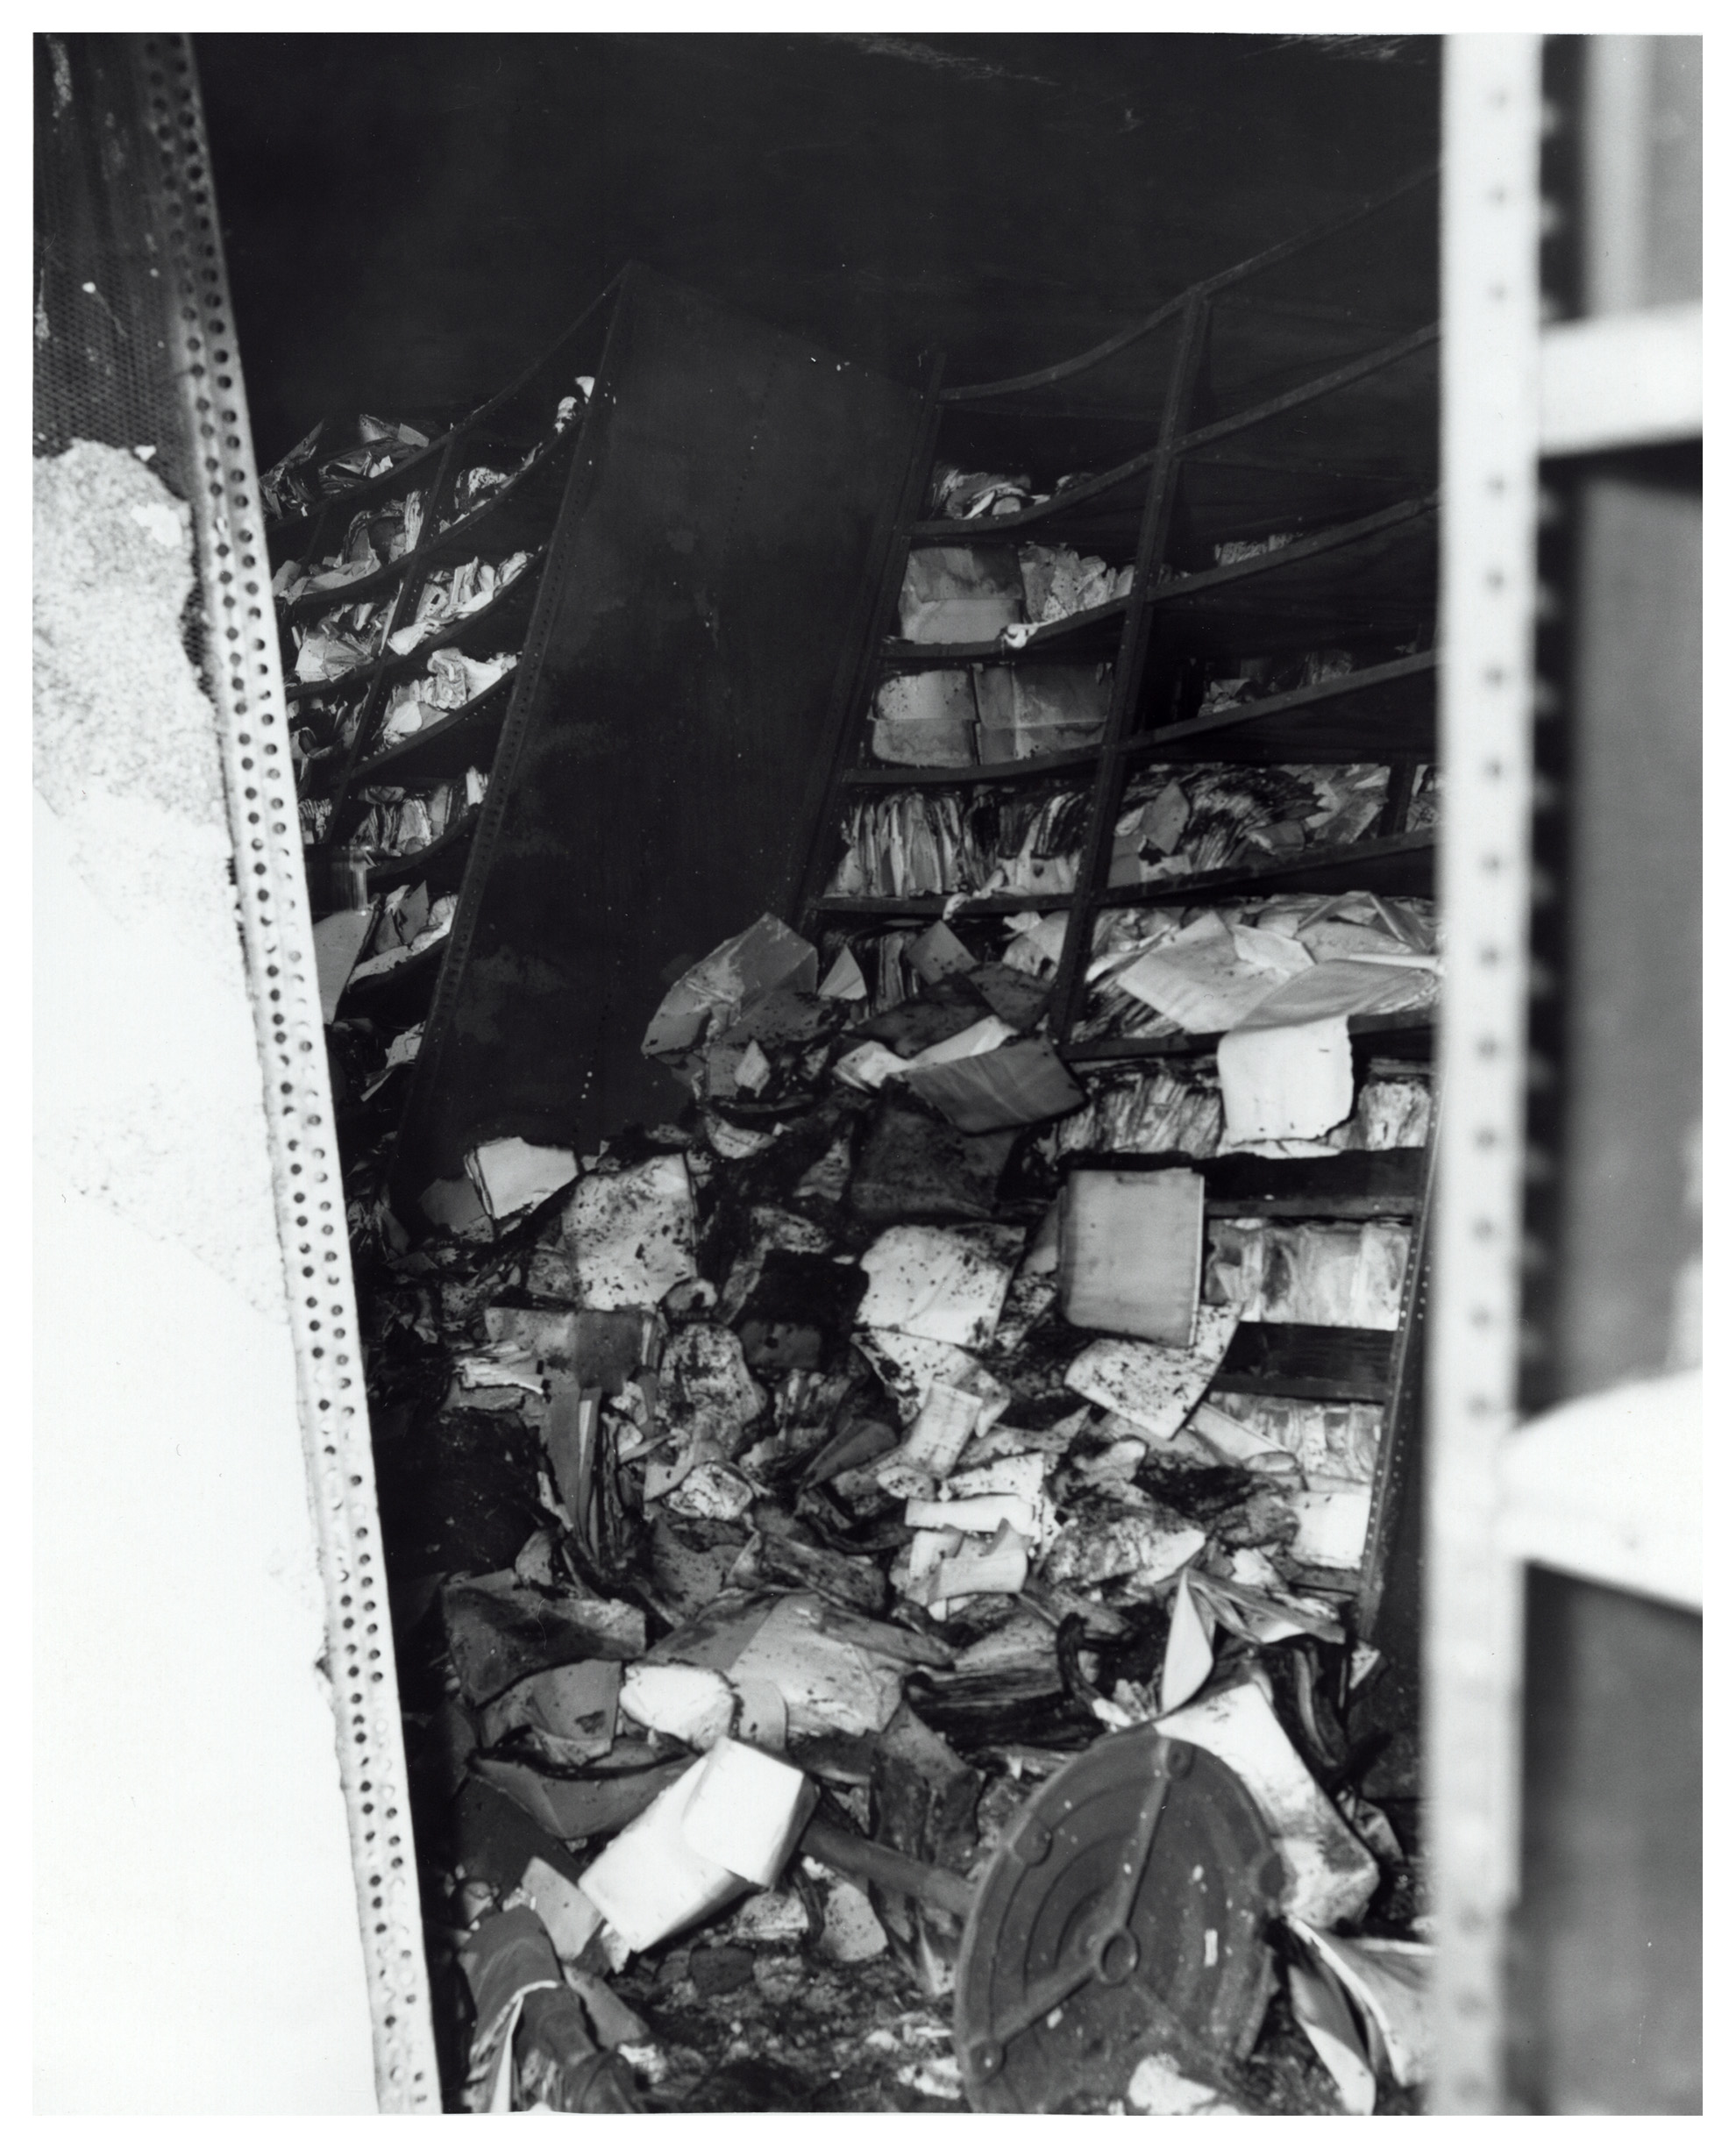 As the fronts of boxes burned away, records spilled to the floor, providing further fuel for the fire.